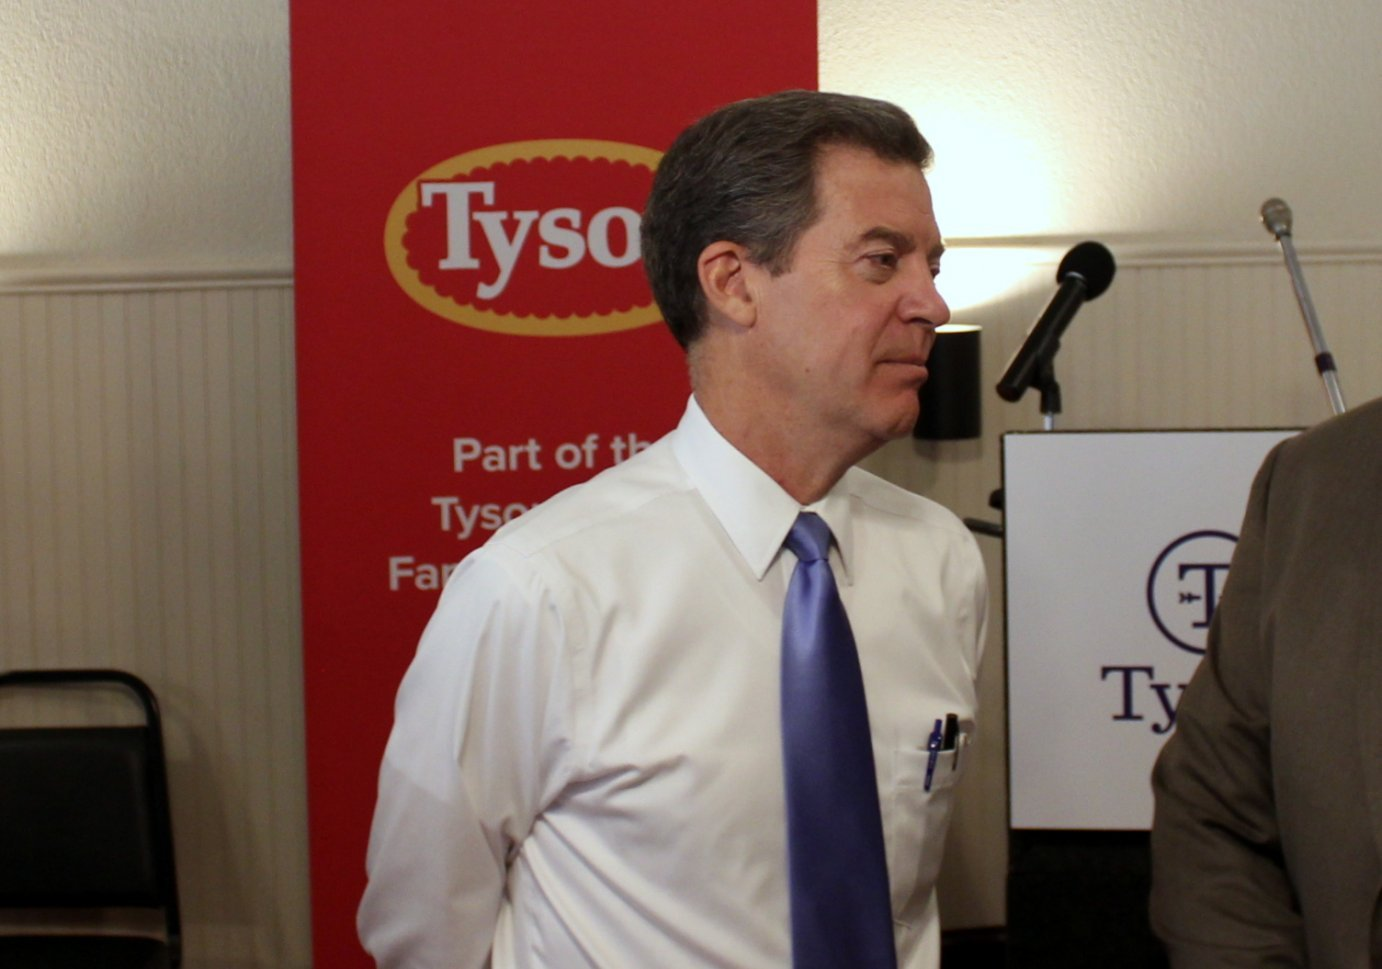 Governor Sam Brownback at an event unveiling a planned Tyson facility in September. That plan was later put on hold. (Photo by Stephen Koranda)